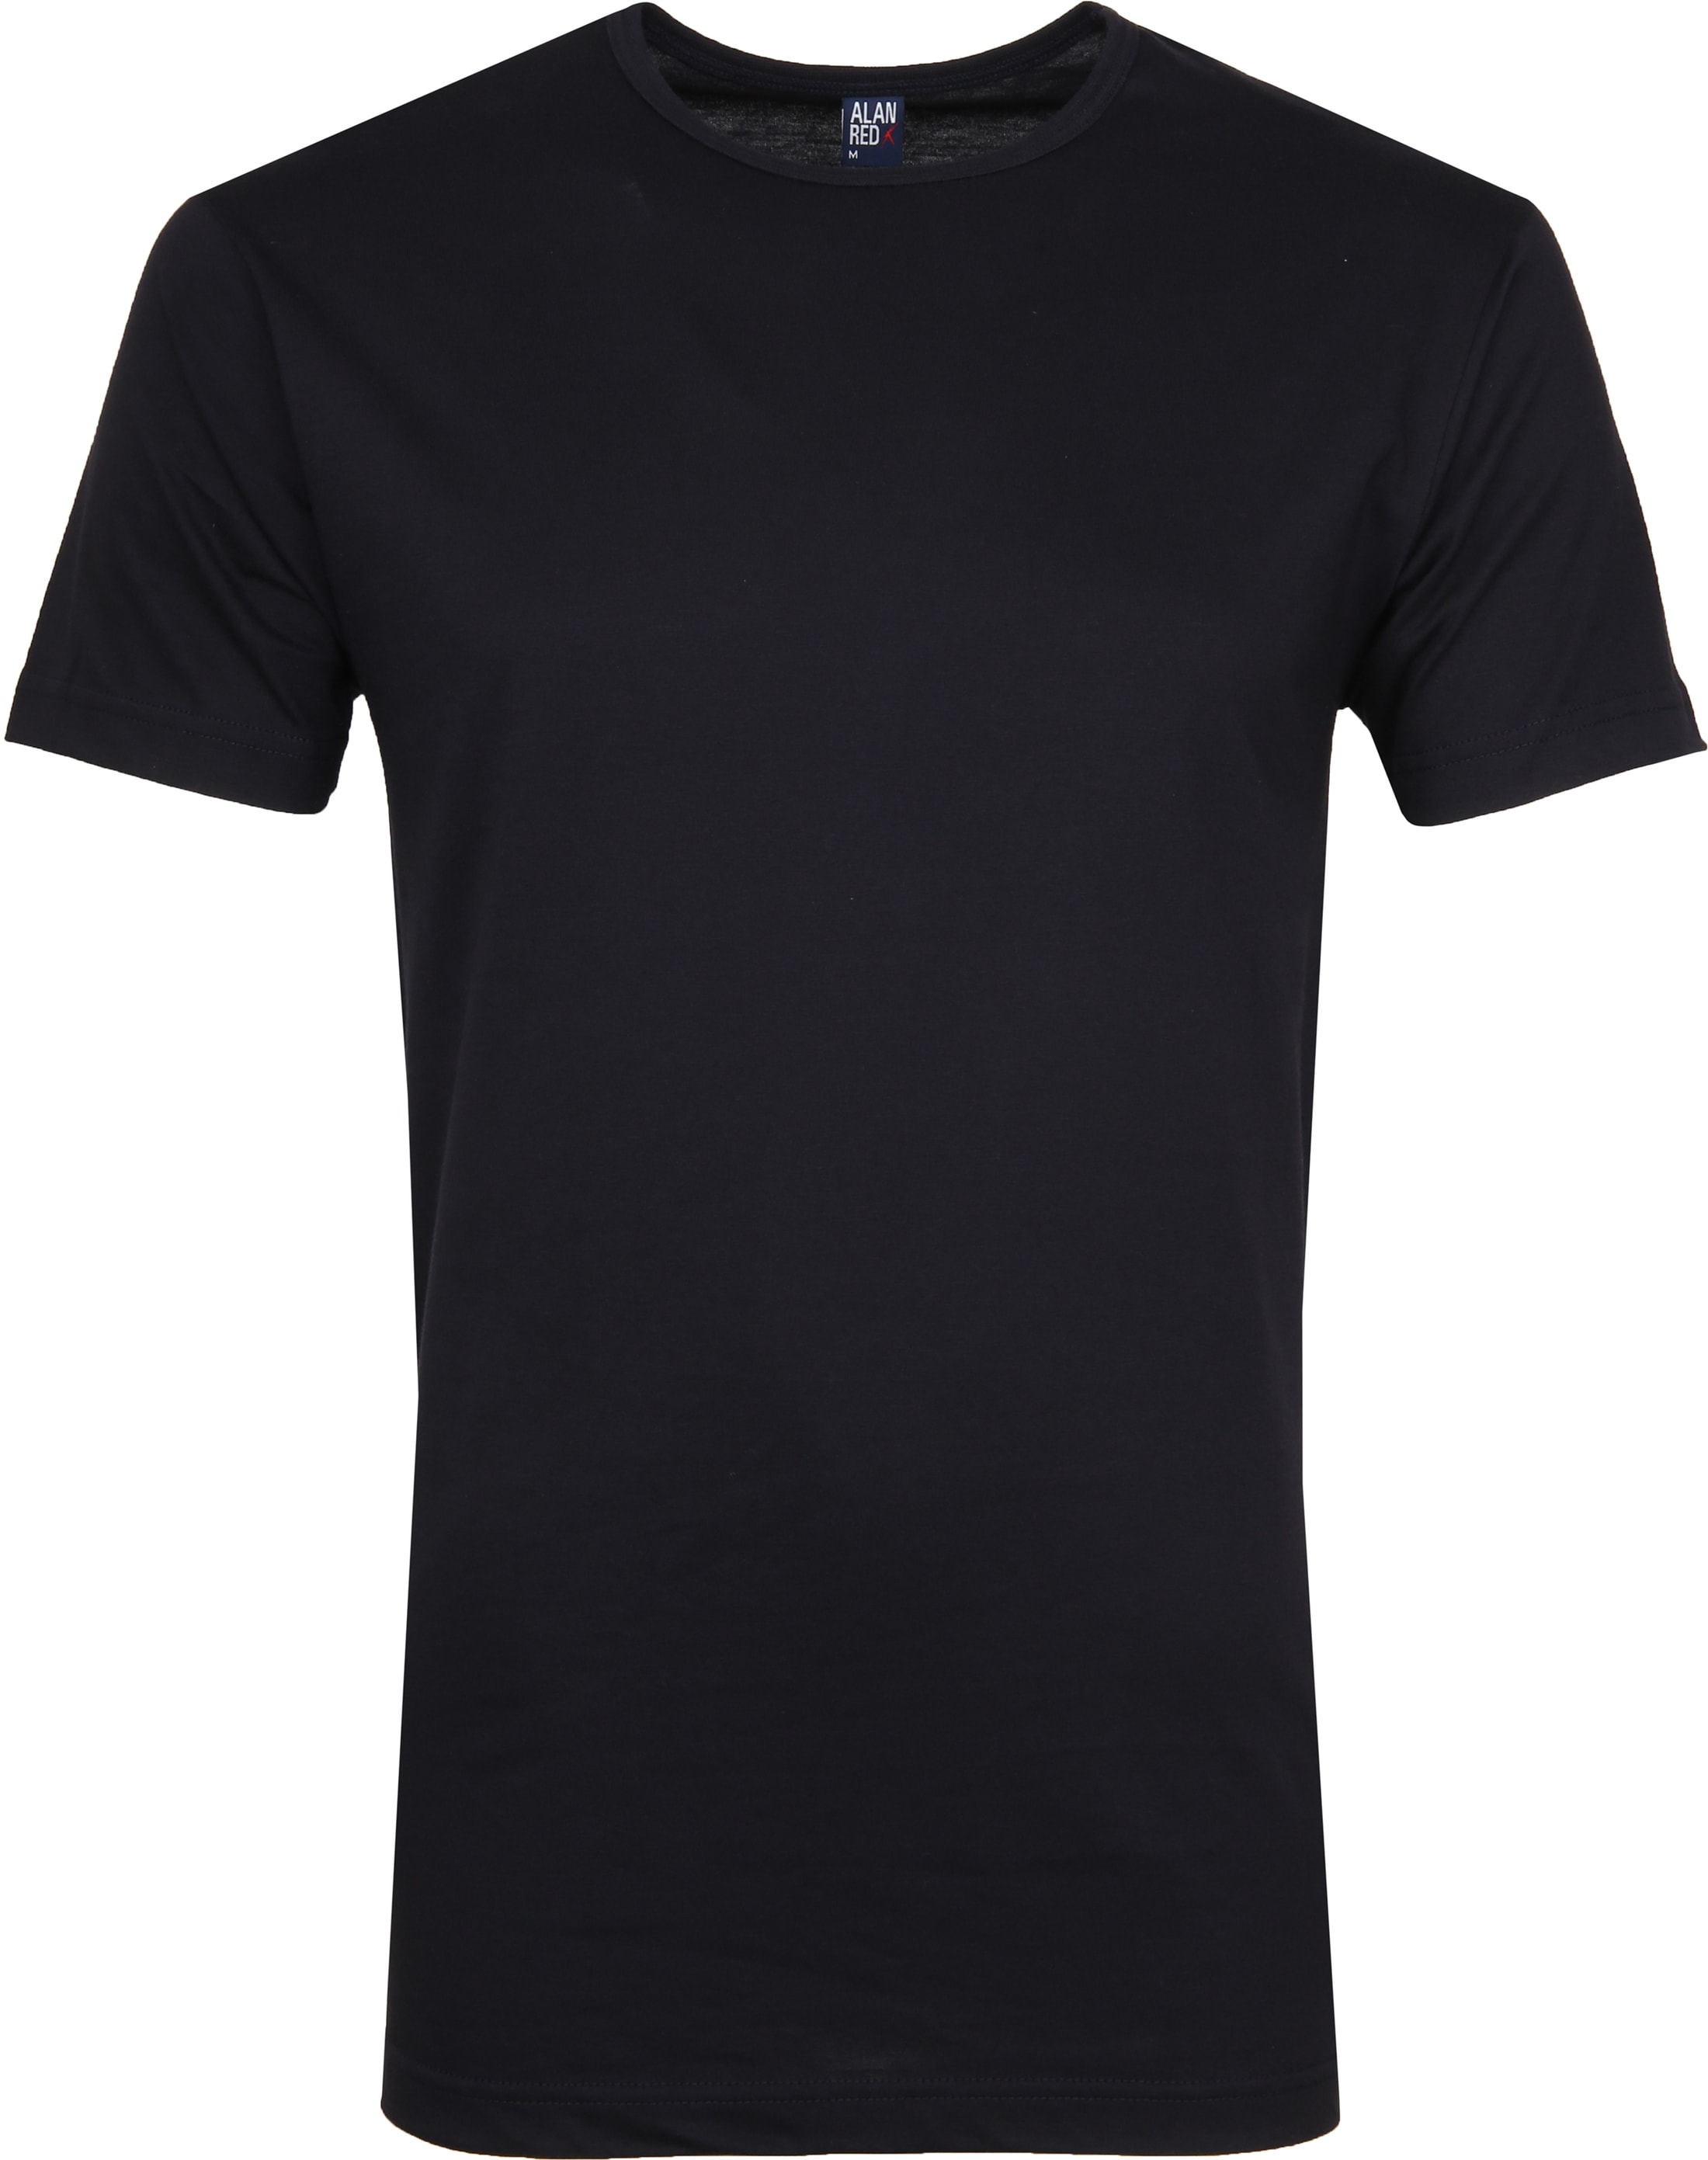 Alan Red Derby R-Neck T-Shirt Navy (2Pack) foto 1